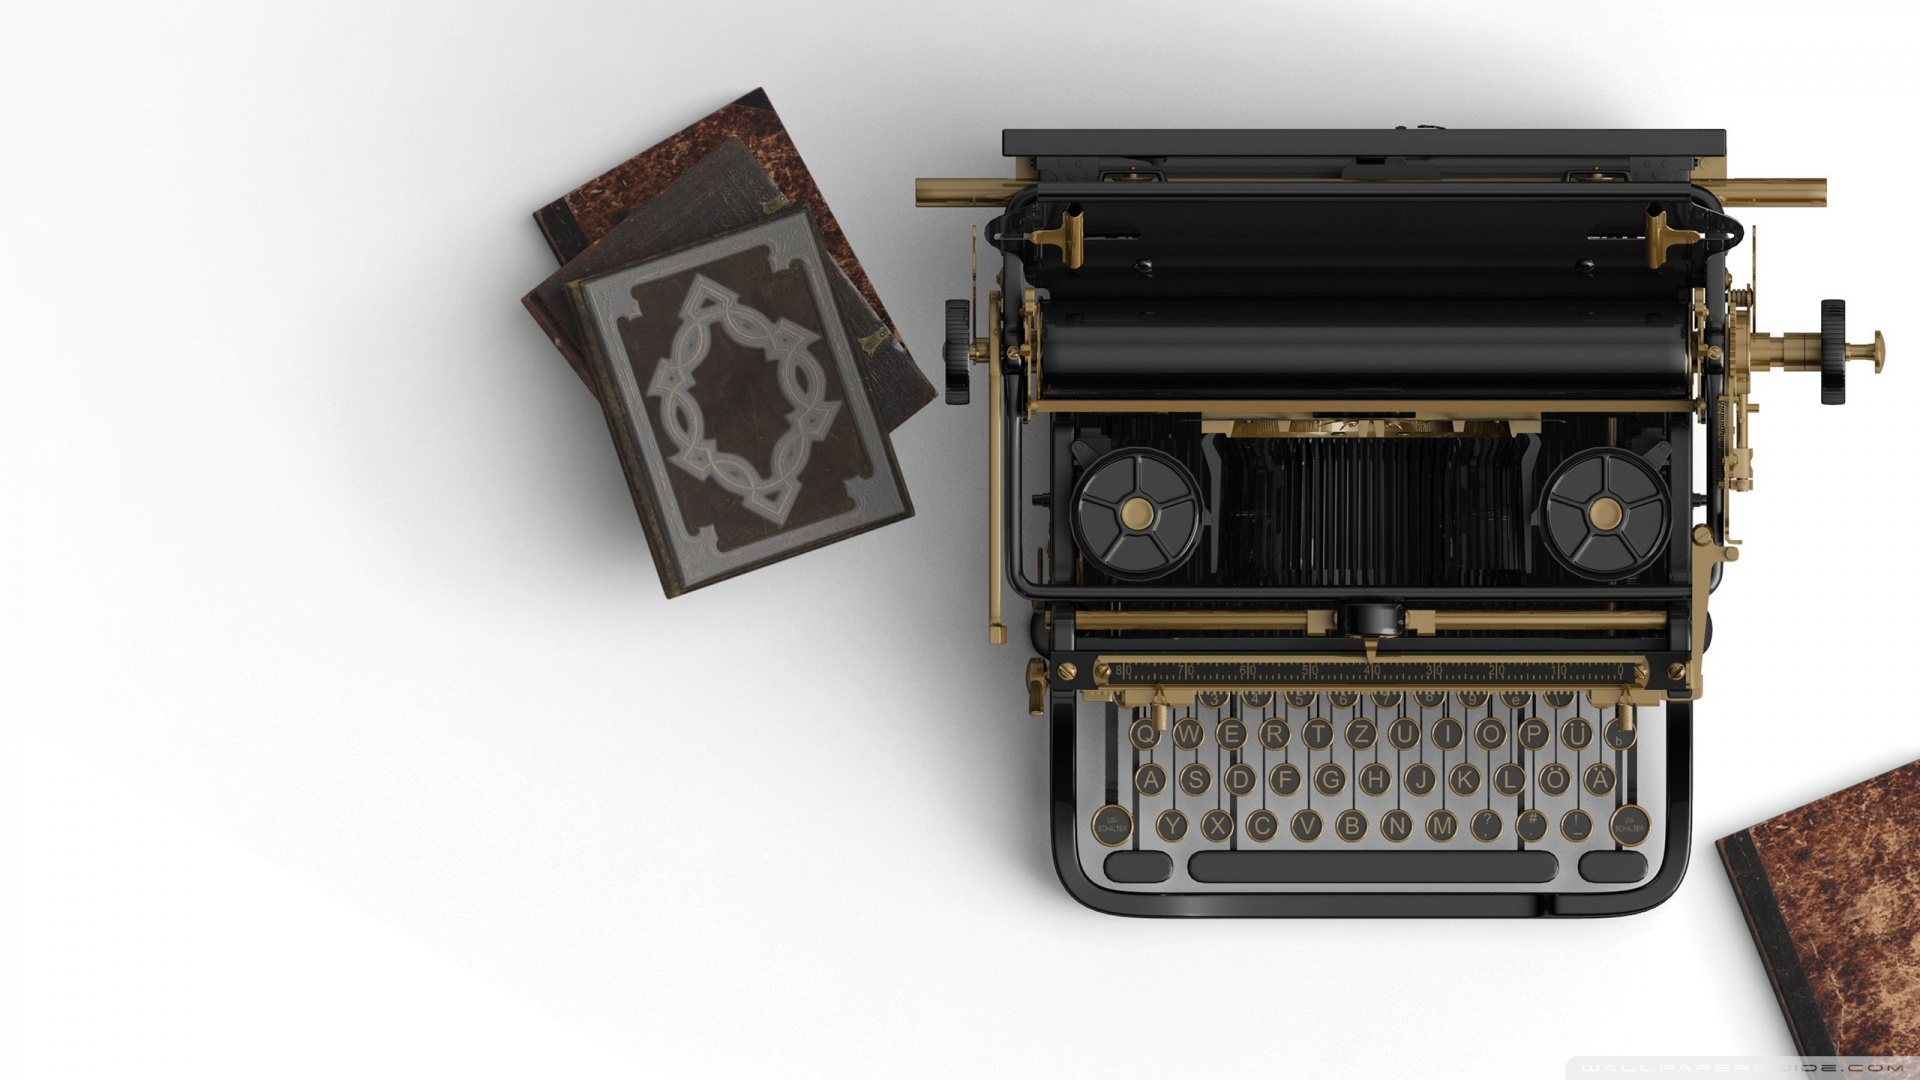 Vintage Typewriter Aesthetic Ultra Hd Desktop Background Wallpaper For 4k Uhd Tv Tablet Smartphone